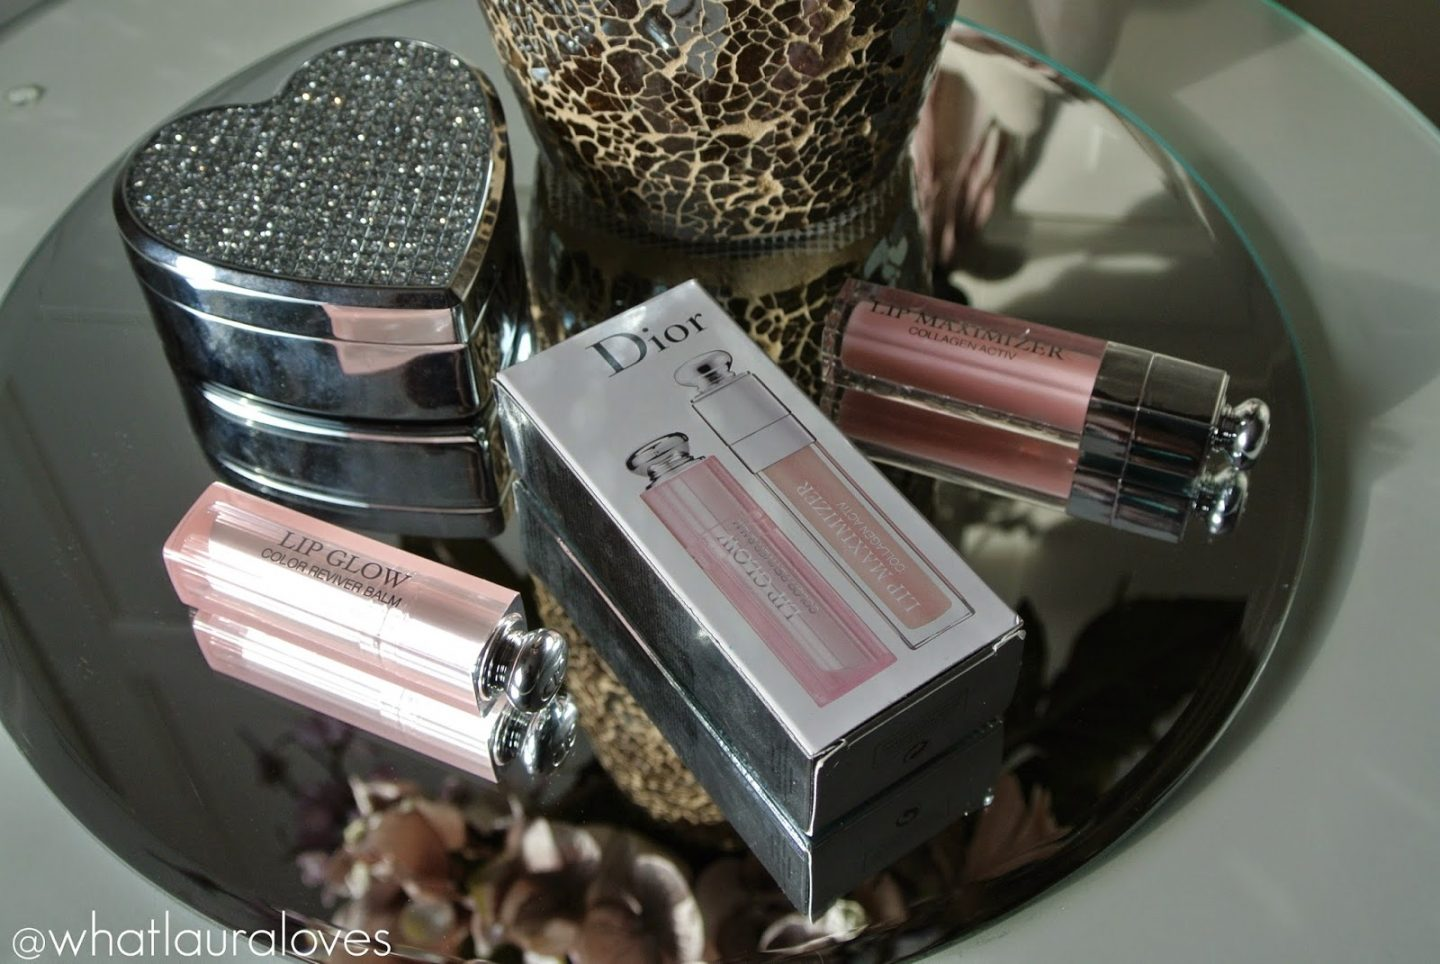 Dior Travel Exclusive Lip Glow